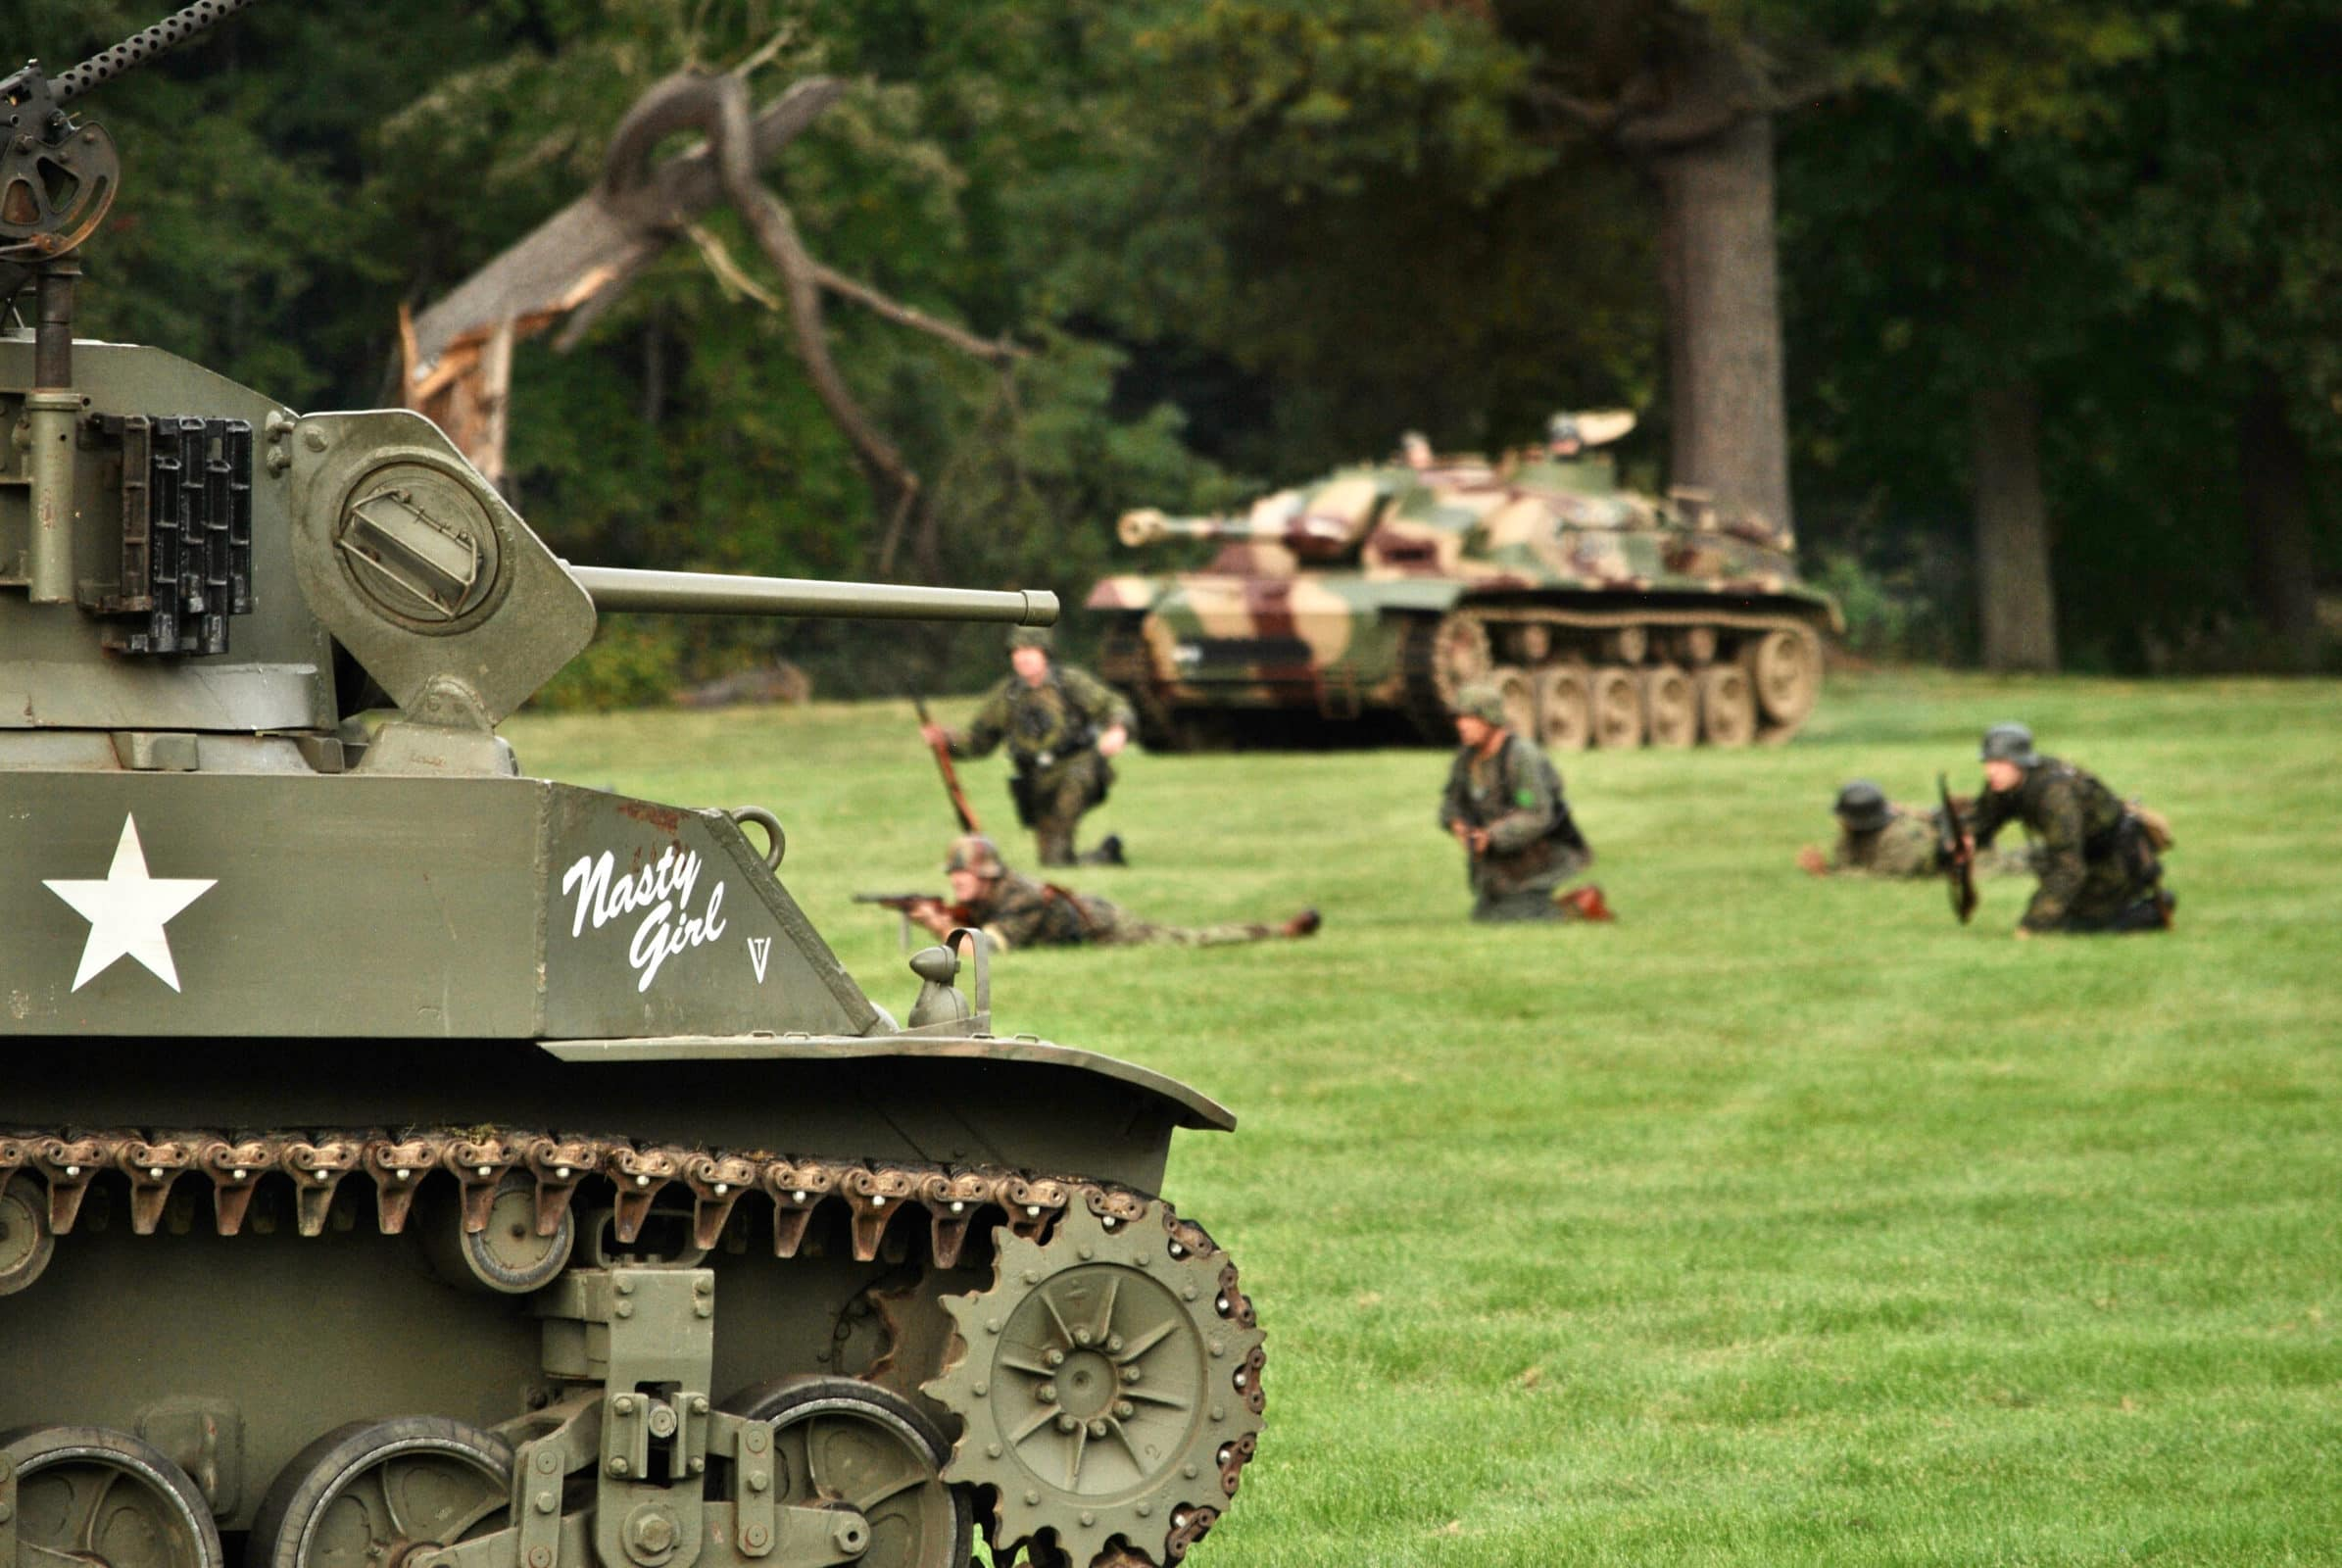 Reenactors line up in battle with an abandoned armored vehicle in the foreground.